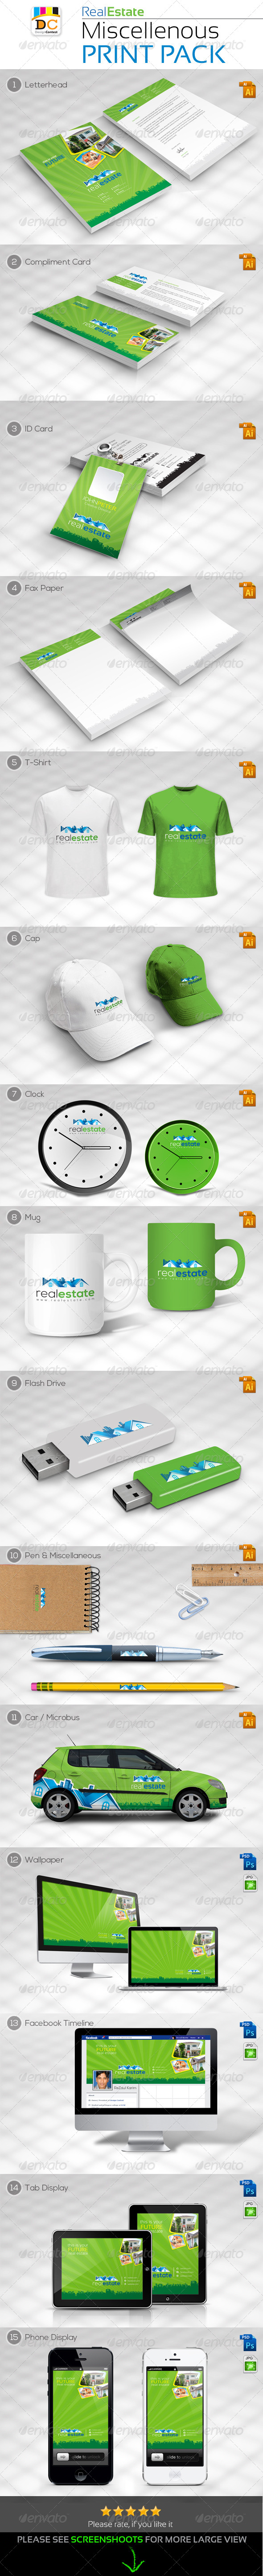 GraphicRiver Real Estate Miscellaneous Print Pack 5048544